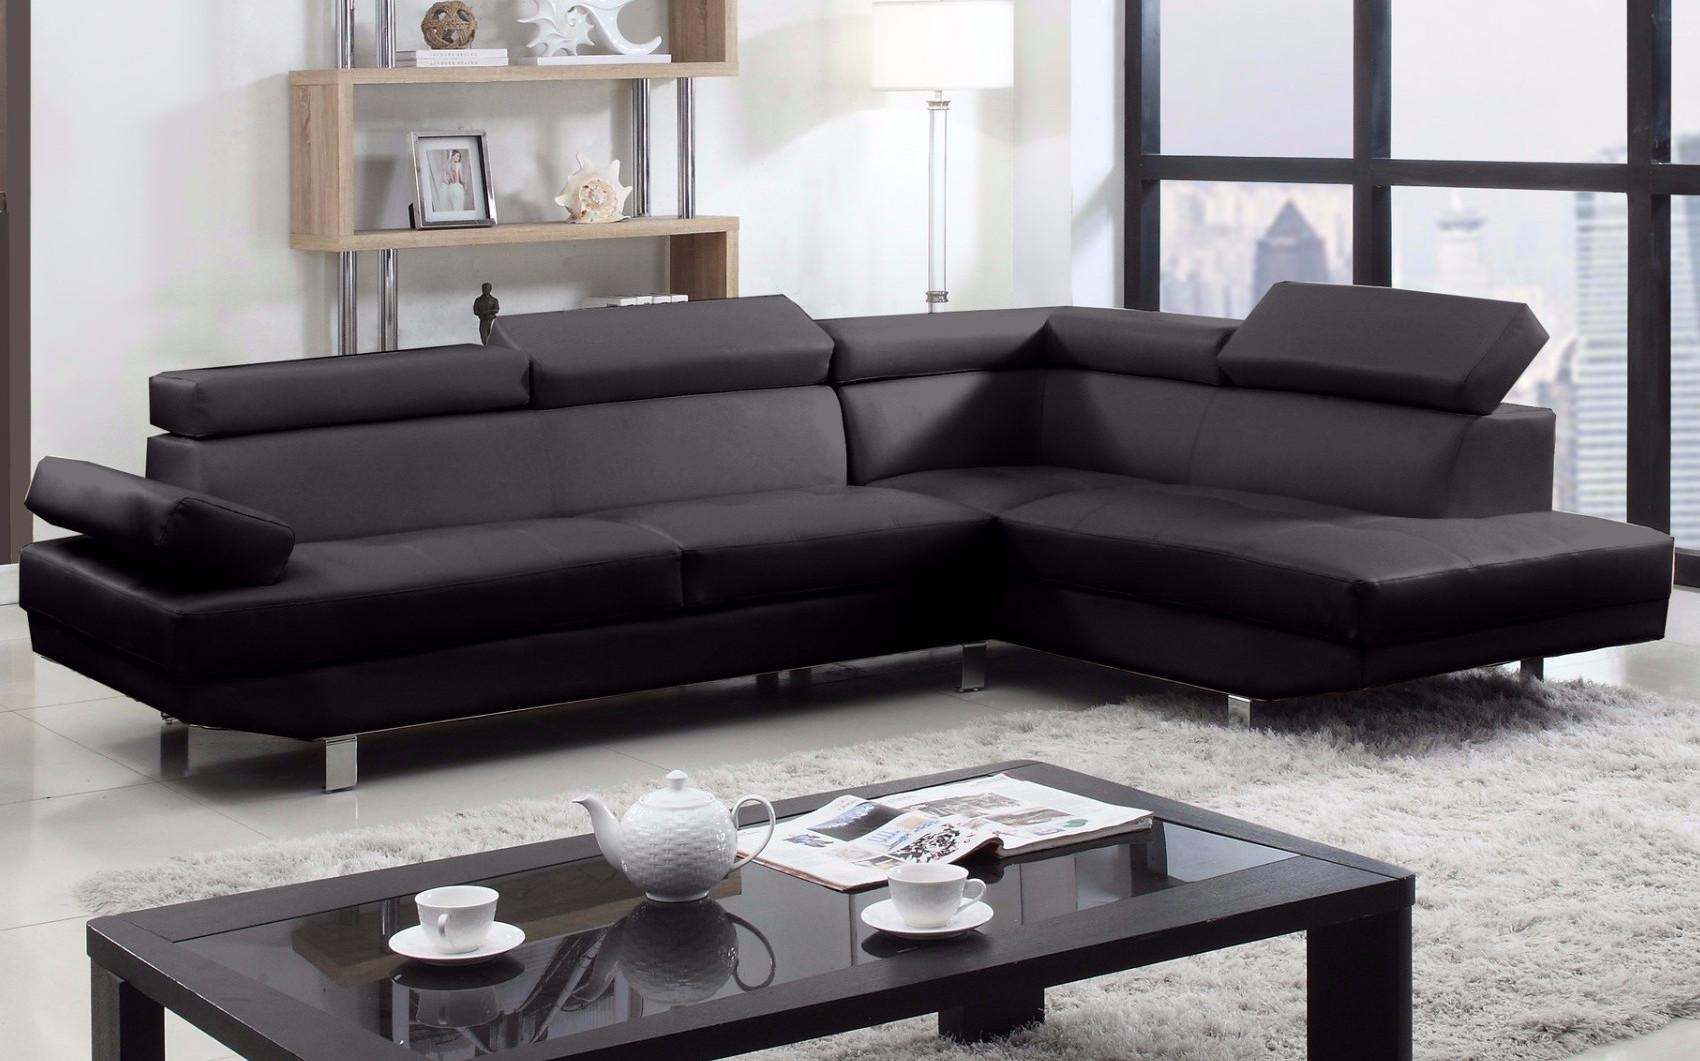 2 Piece Modern Bonded Leather Right Facing Chaise Sectional Sofa Throughout Sectional Sofa With 2 Chaises (Image 1 of 20)